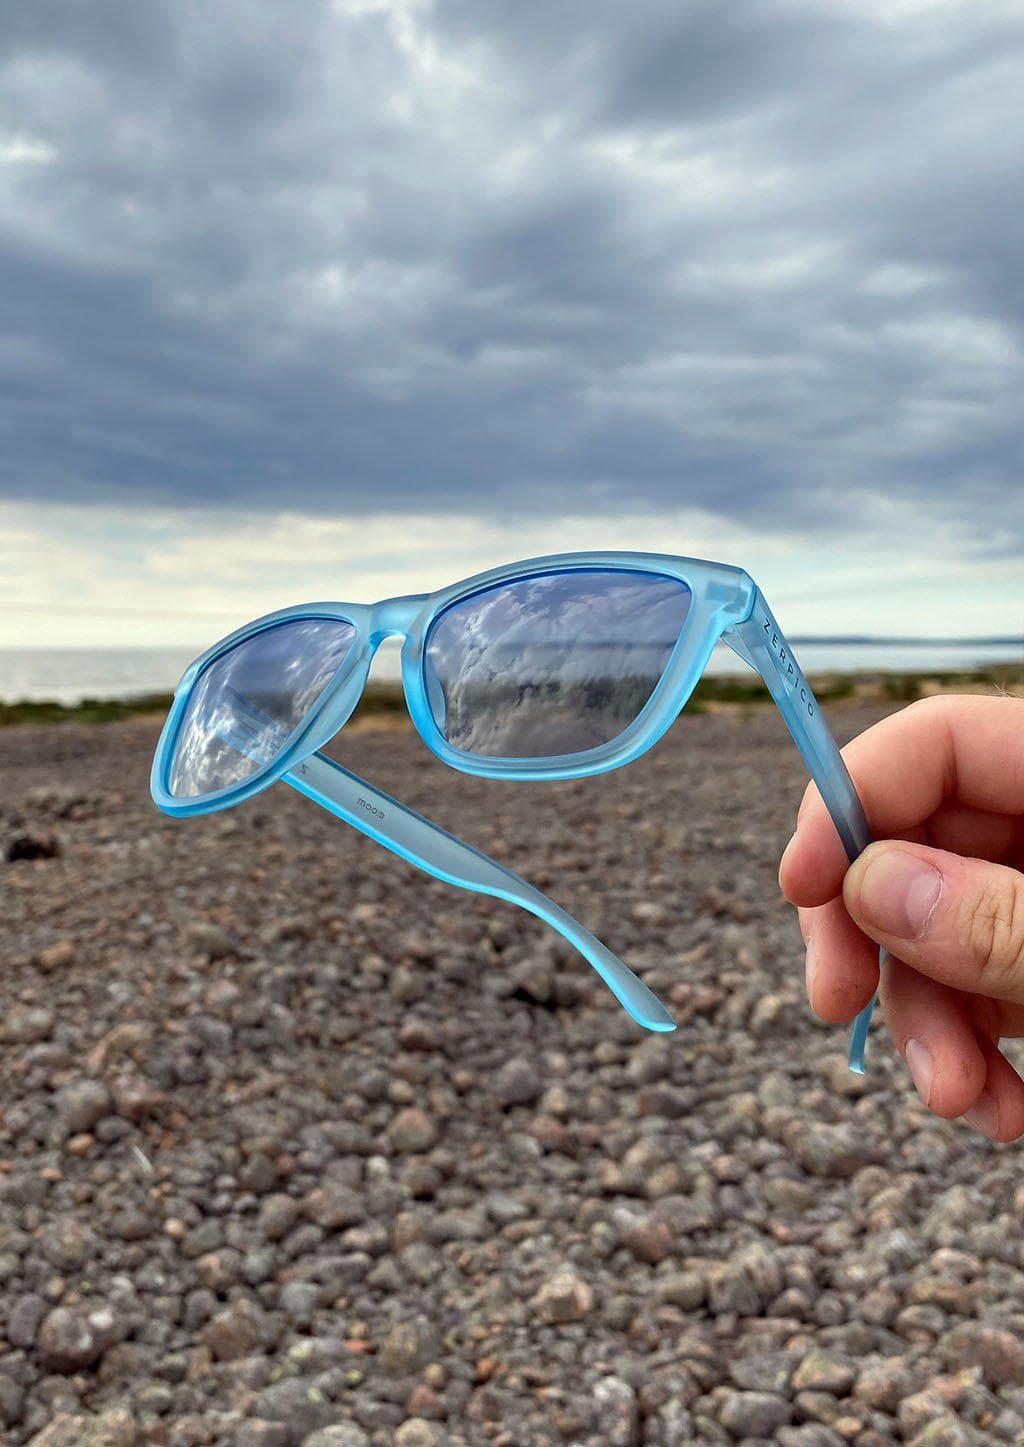 Our Mood V2 is an improved version of our last wayfarers. Plastic body for great quality and durabilty. This is Belize with blue frame and blue lenses. Outside from the side.